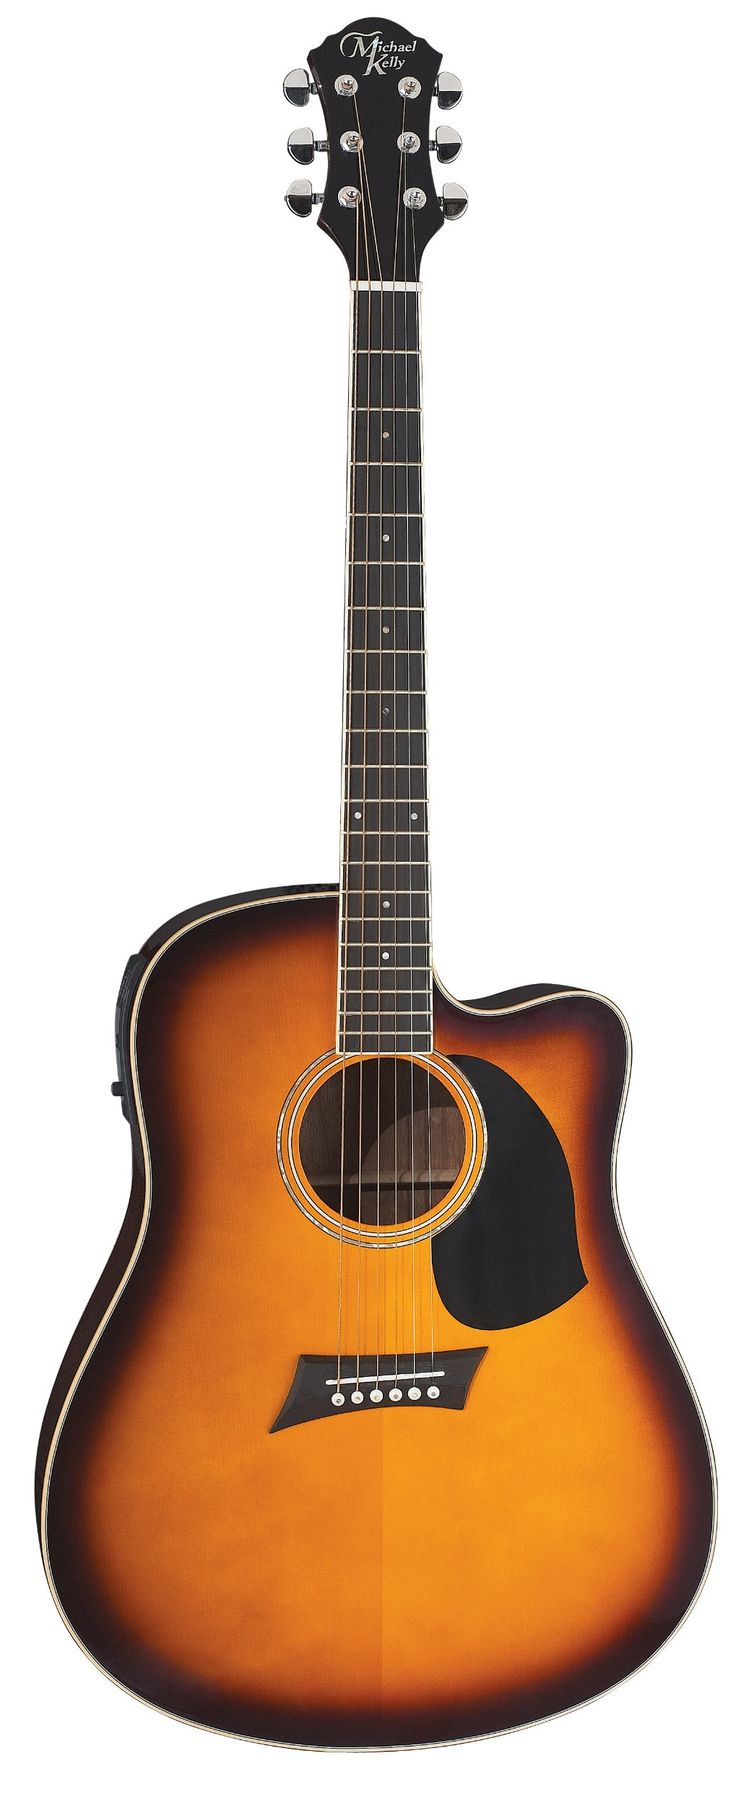 Michael Kelly Nostalgia N10CE N10CETSB Acoustic Electric Guitar. Michael Kelly AO3T 3-band EQ. Spruce Top. Cutaway. Dovetail Joint Construction. D'Addario Strings.